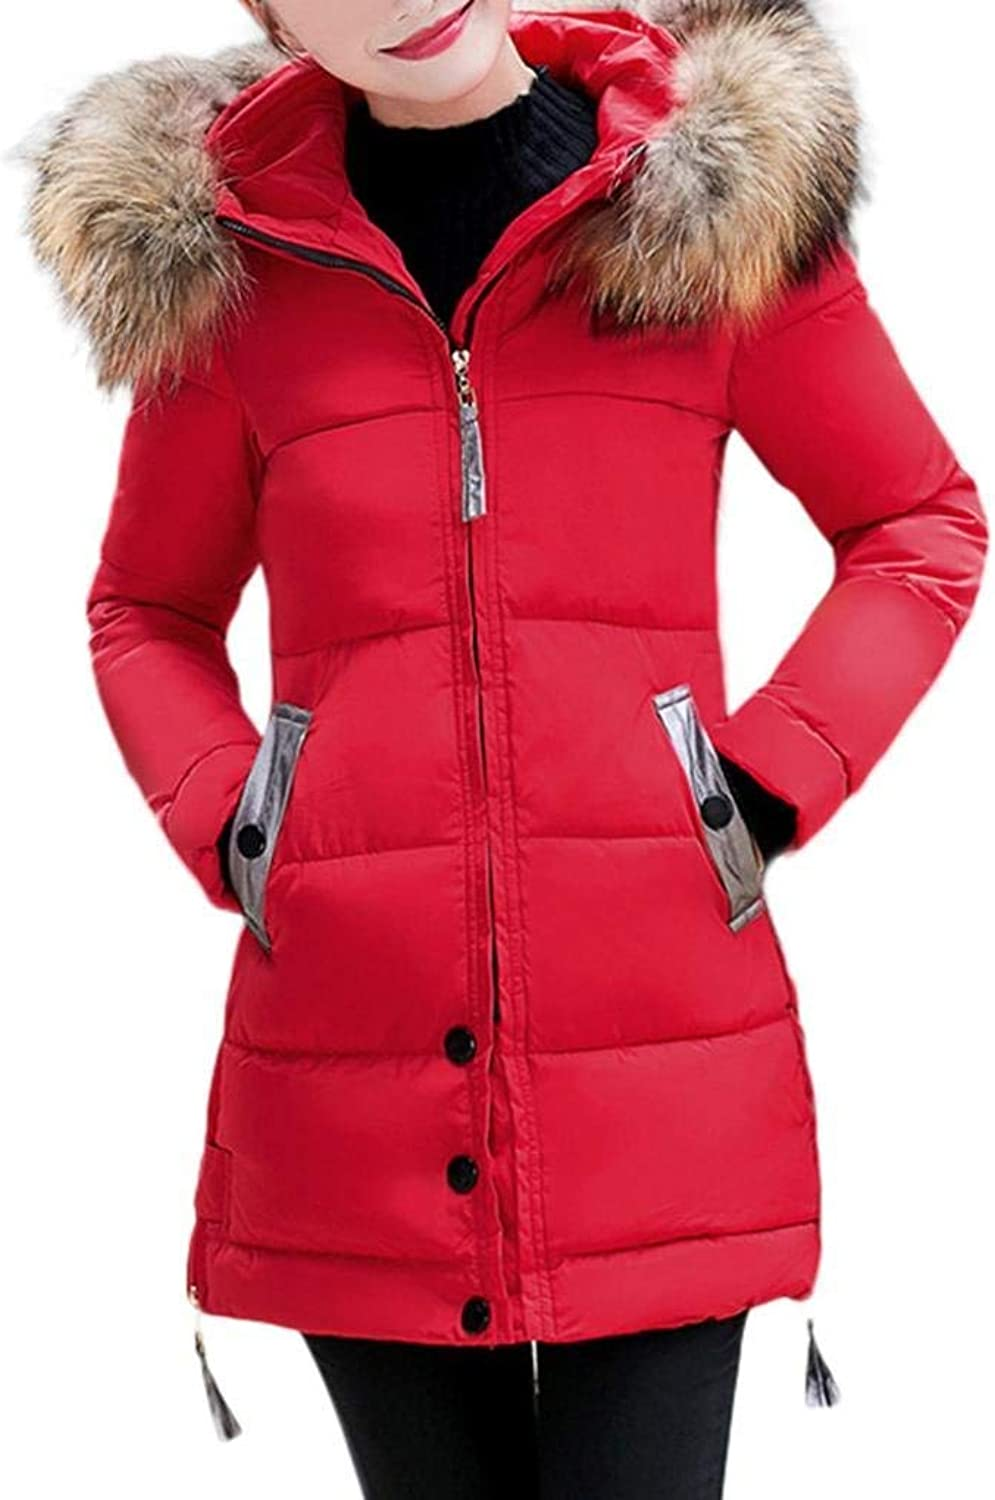 Oudan Women Slim Hooded Down Padded Long Winter Warm Parka Outwear Jacket Coat (color   Red, Size   L)